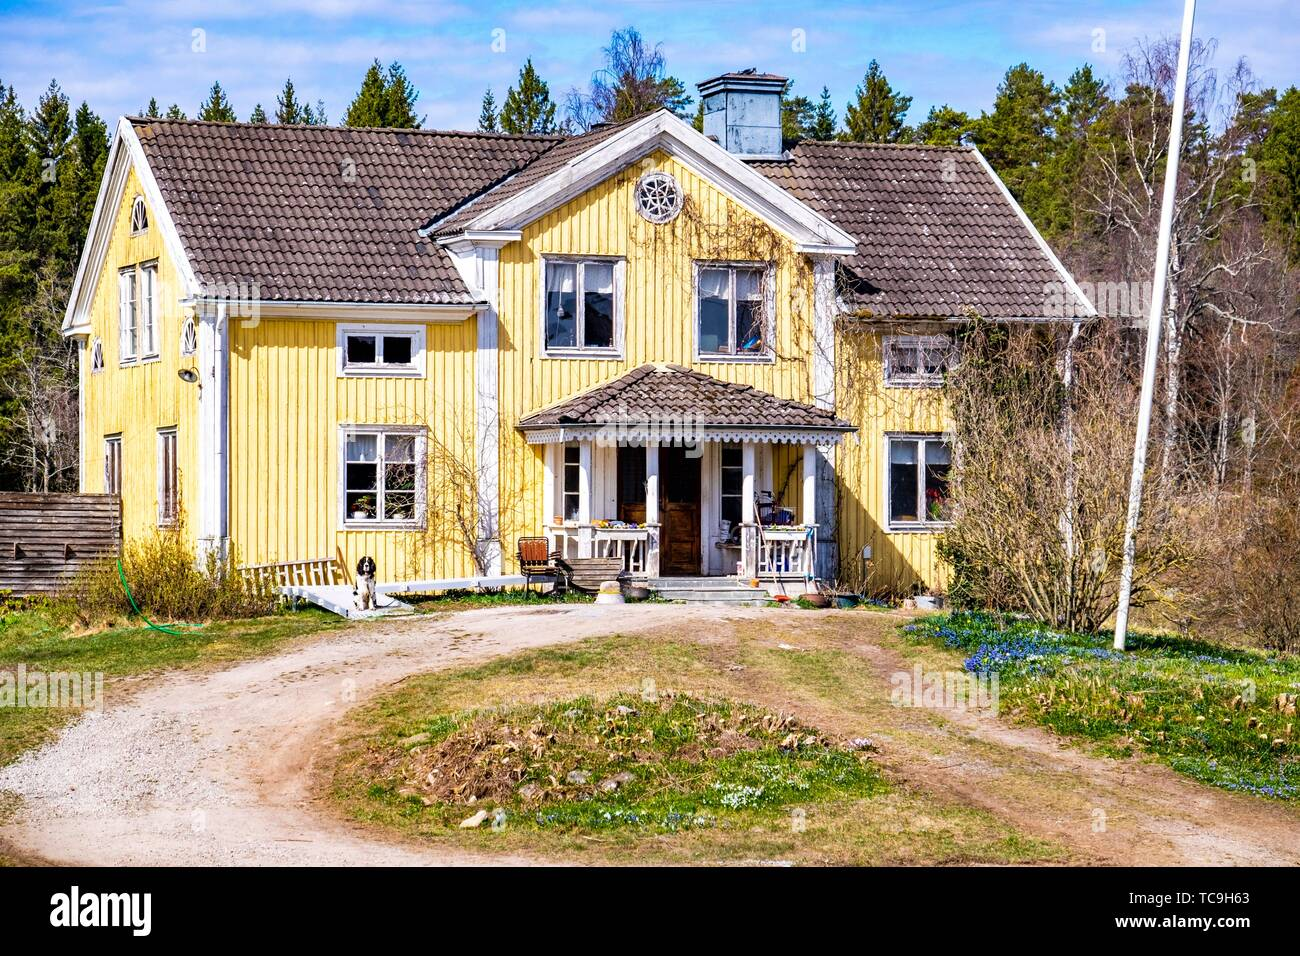 Old villa in the countryside of Sweden. - Stock Image